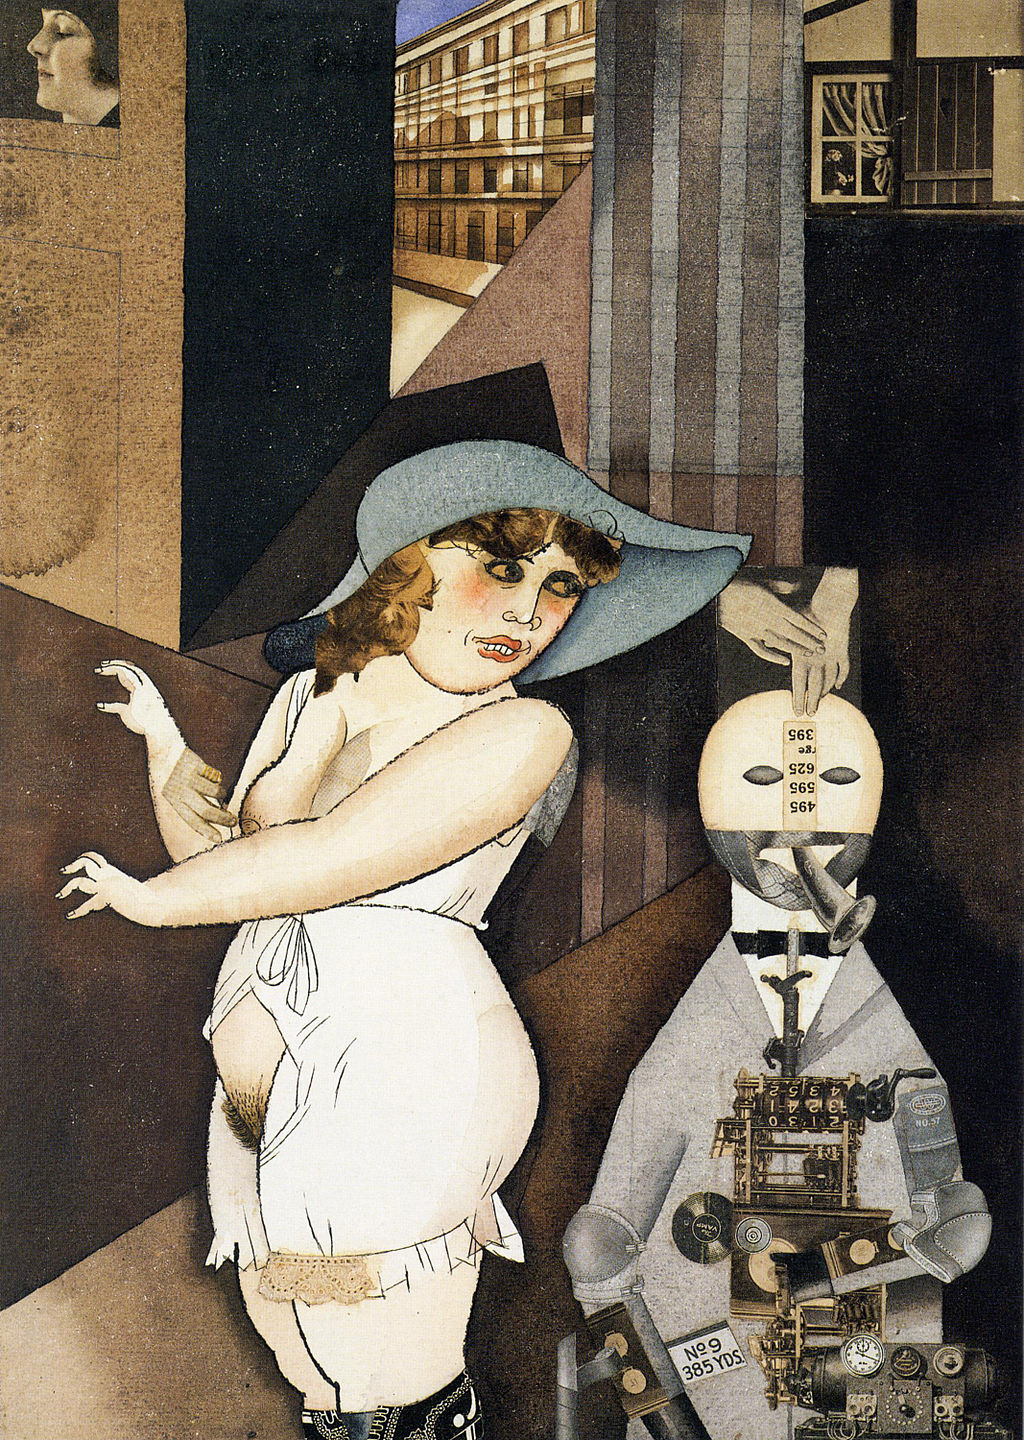 George Grosz, Daum marries her pedantic automaton George in May 1920, John Heartfield is very glad of it, Berlinische Galerie Der Dada No. 3 (April 1920)